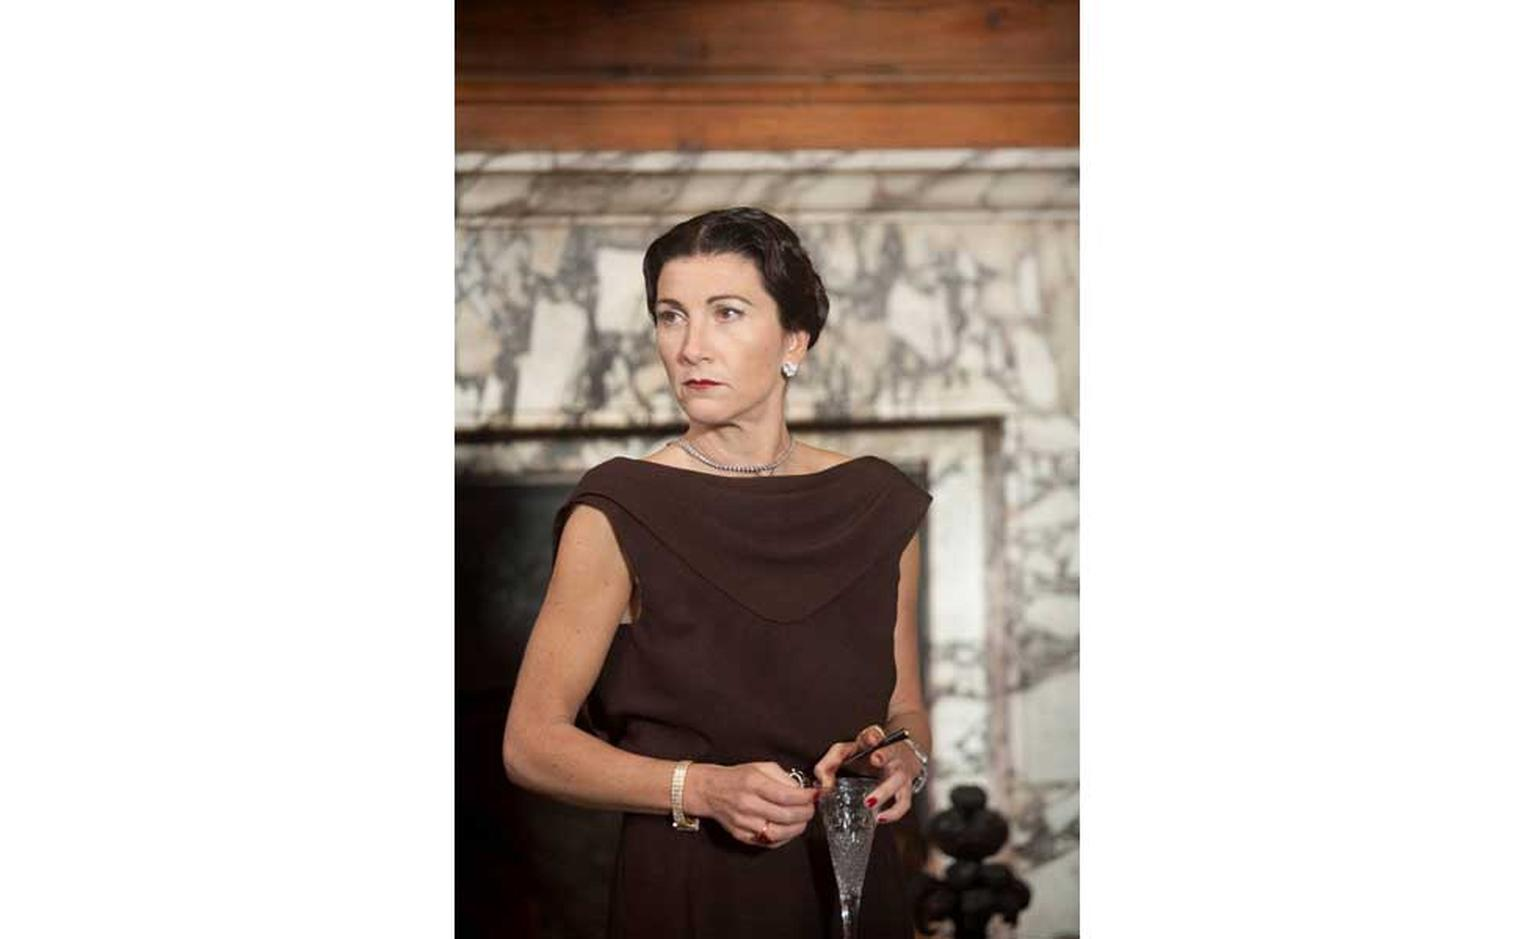 Eve Best as the Duchess of Windsor in The King's Speech film wearing Van Cleef & Arpels by Speaking Film Productions Ltd 2011